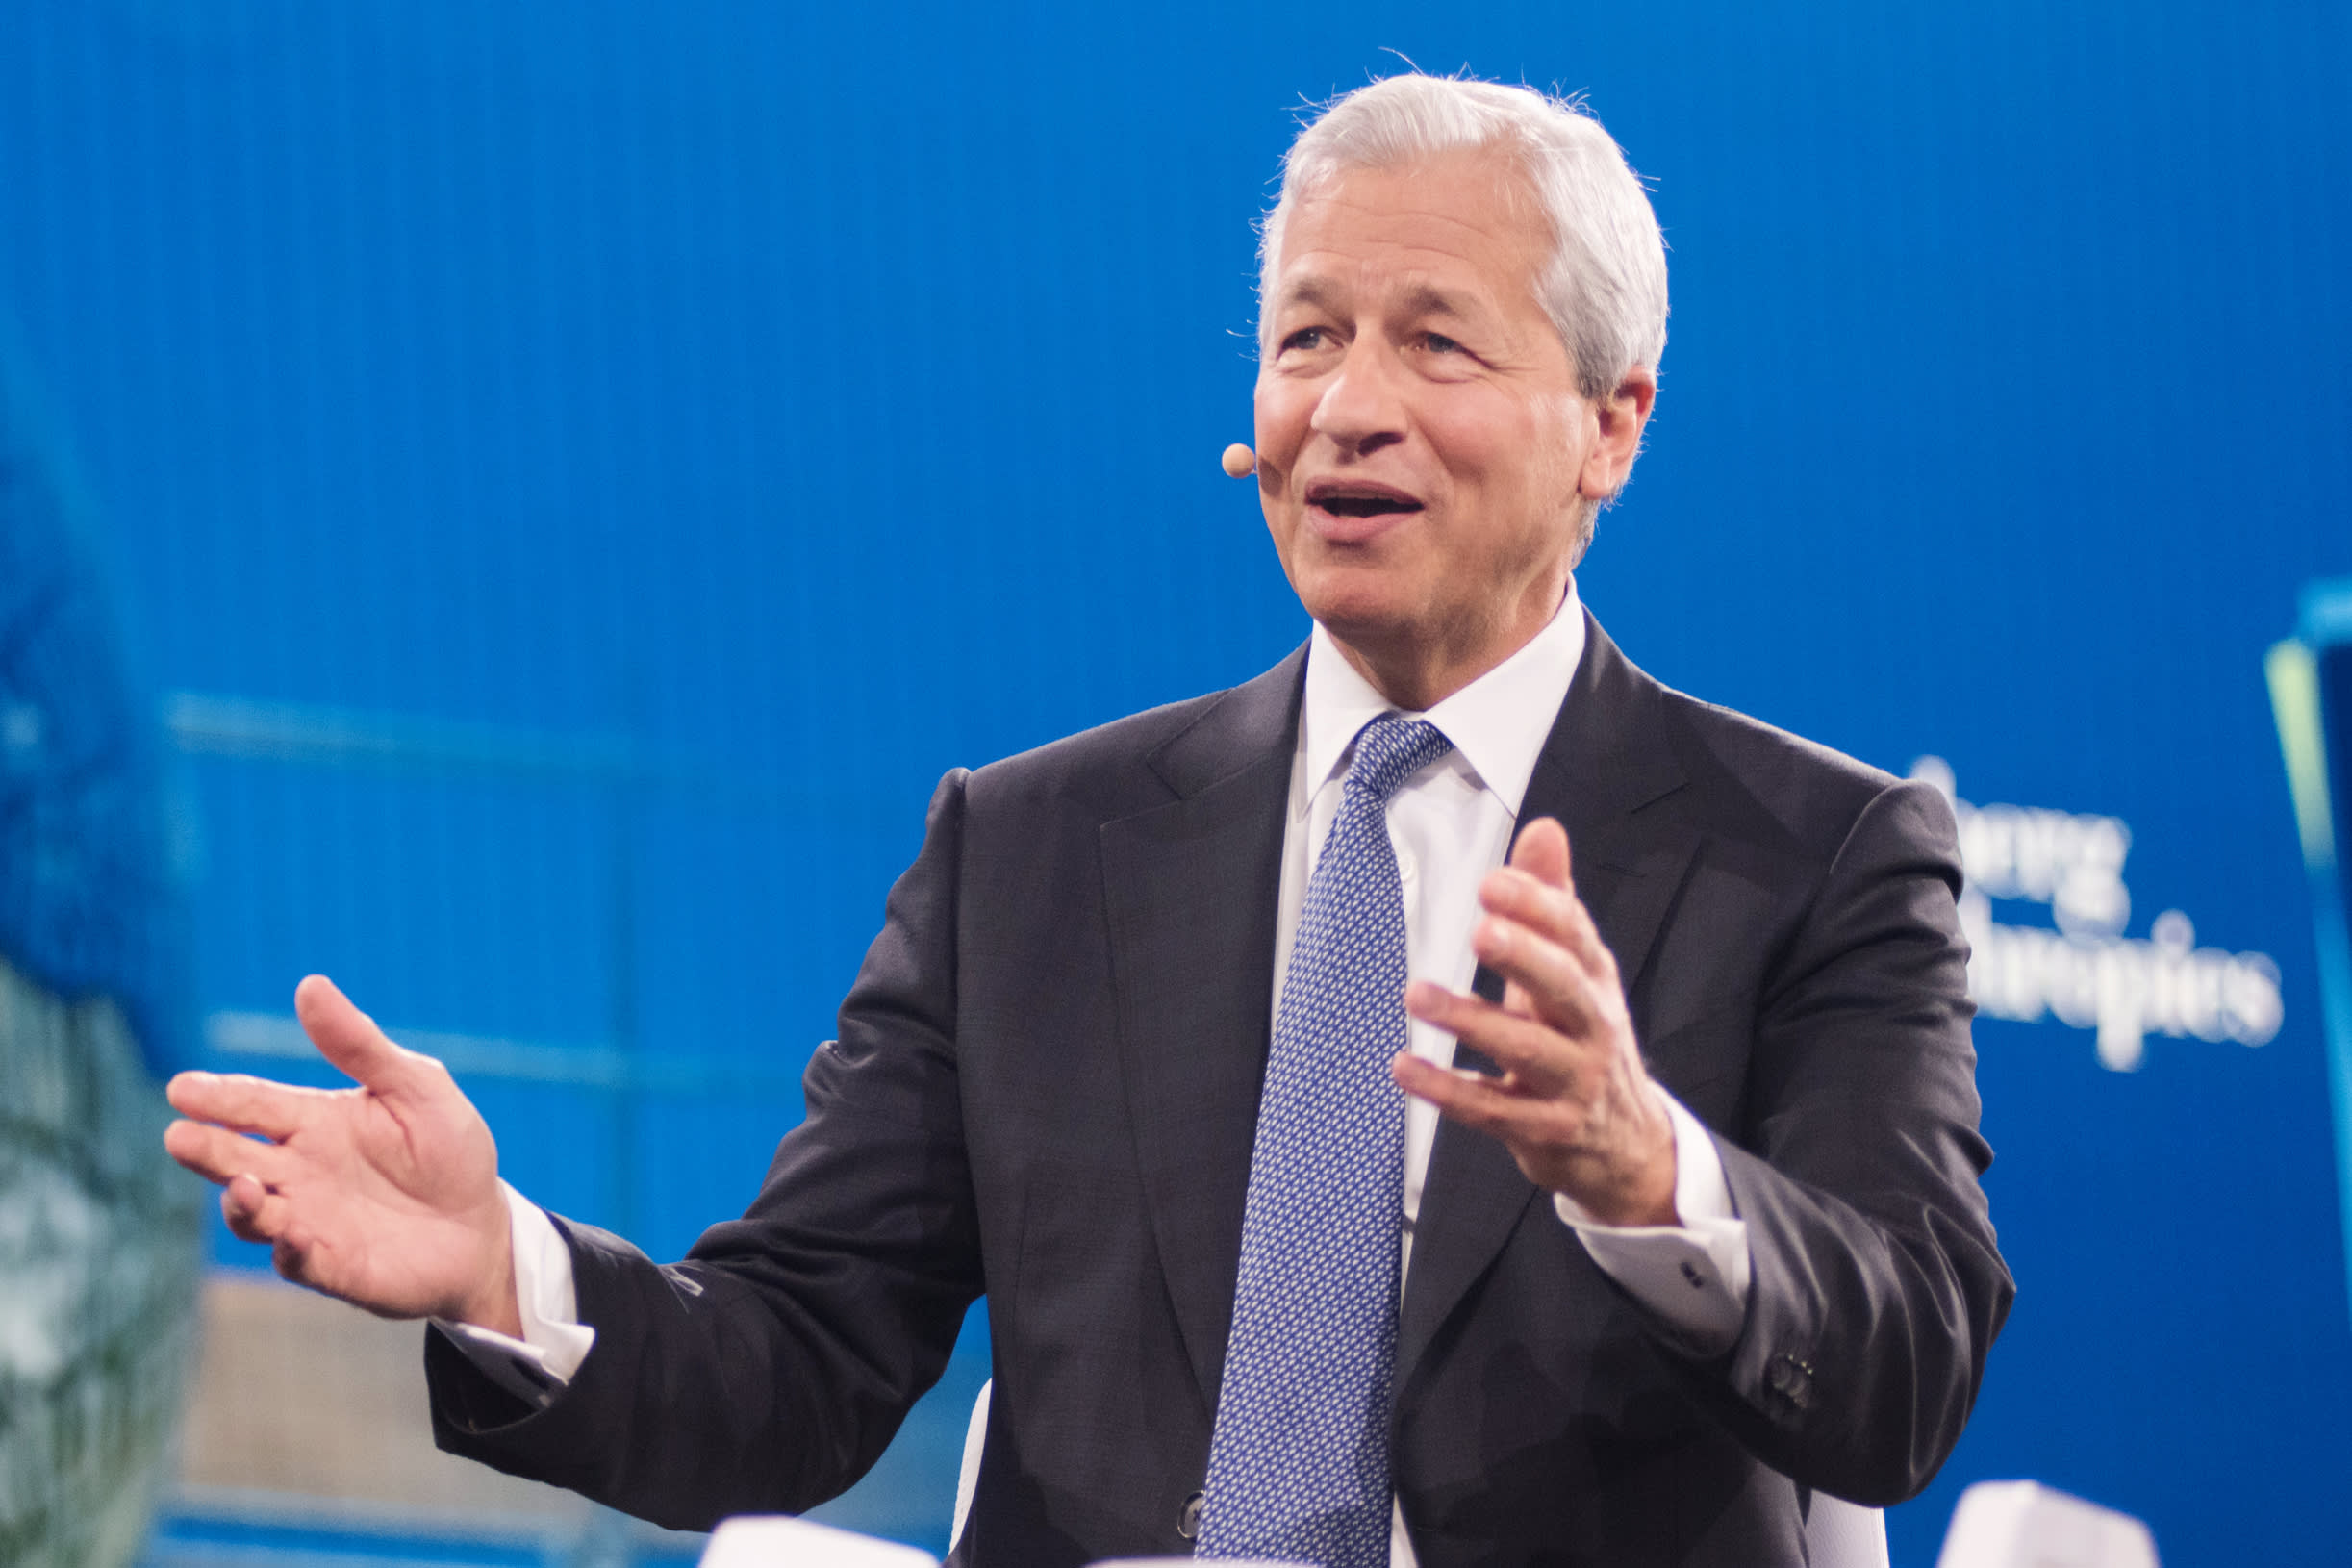 JPMorgan CEO Jamie Dimon's morning routine: Wake up at 5 a.m. and 'read tons of stuff'